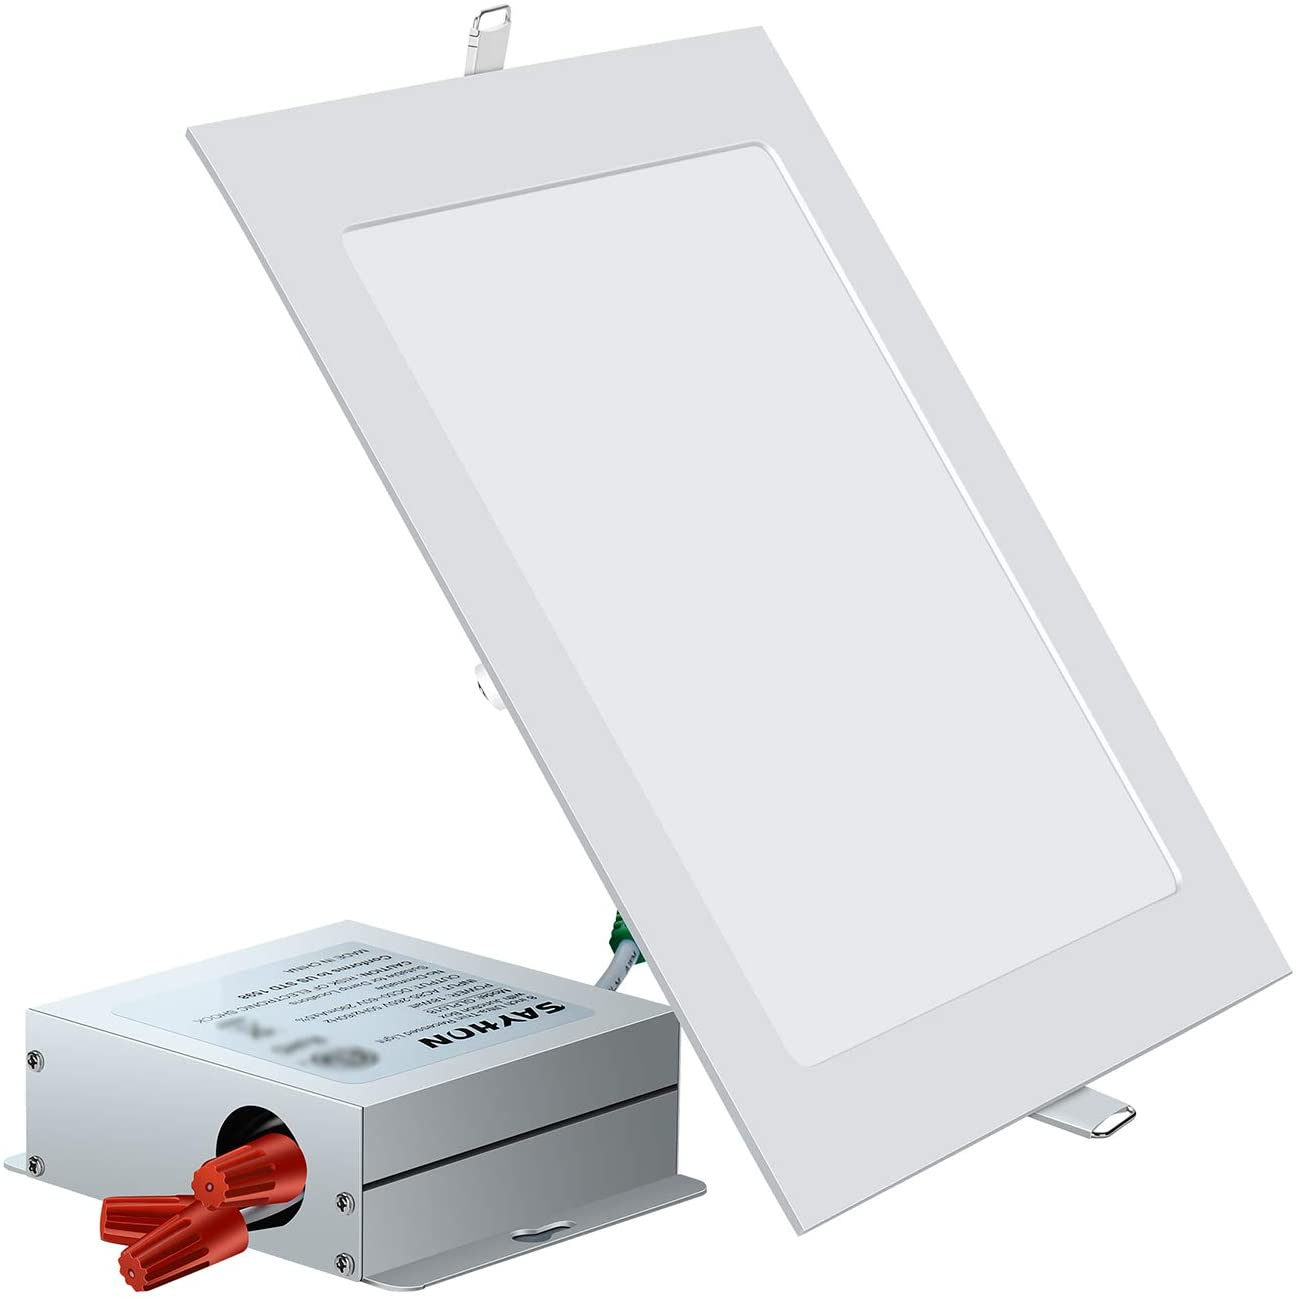 Max 59% OFF SAYHON 8 inch Ultra-Thin Square with Lighting National uniform free shipping Recessed Junction